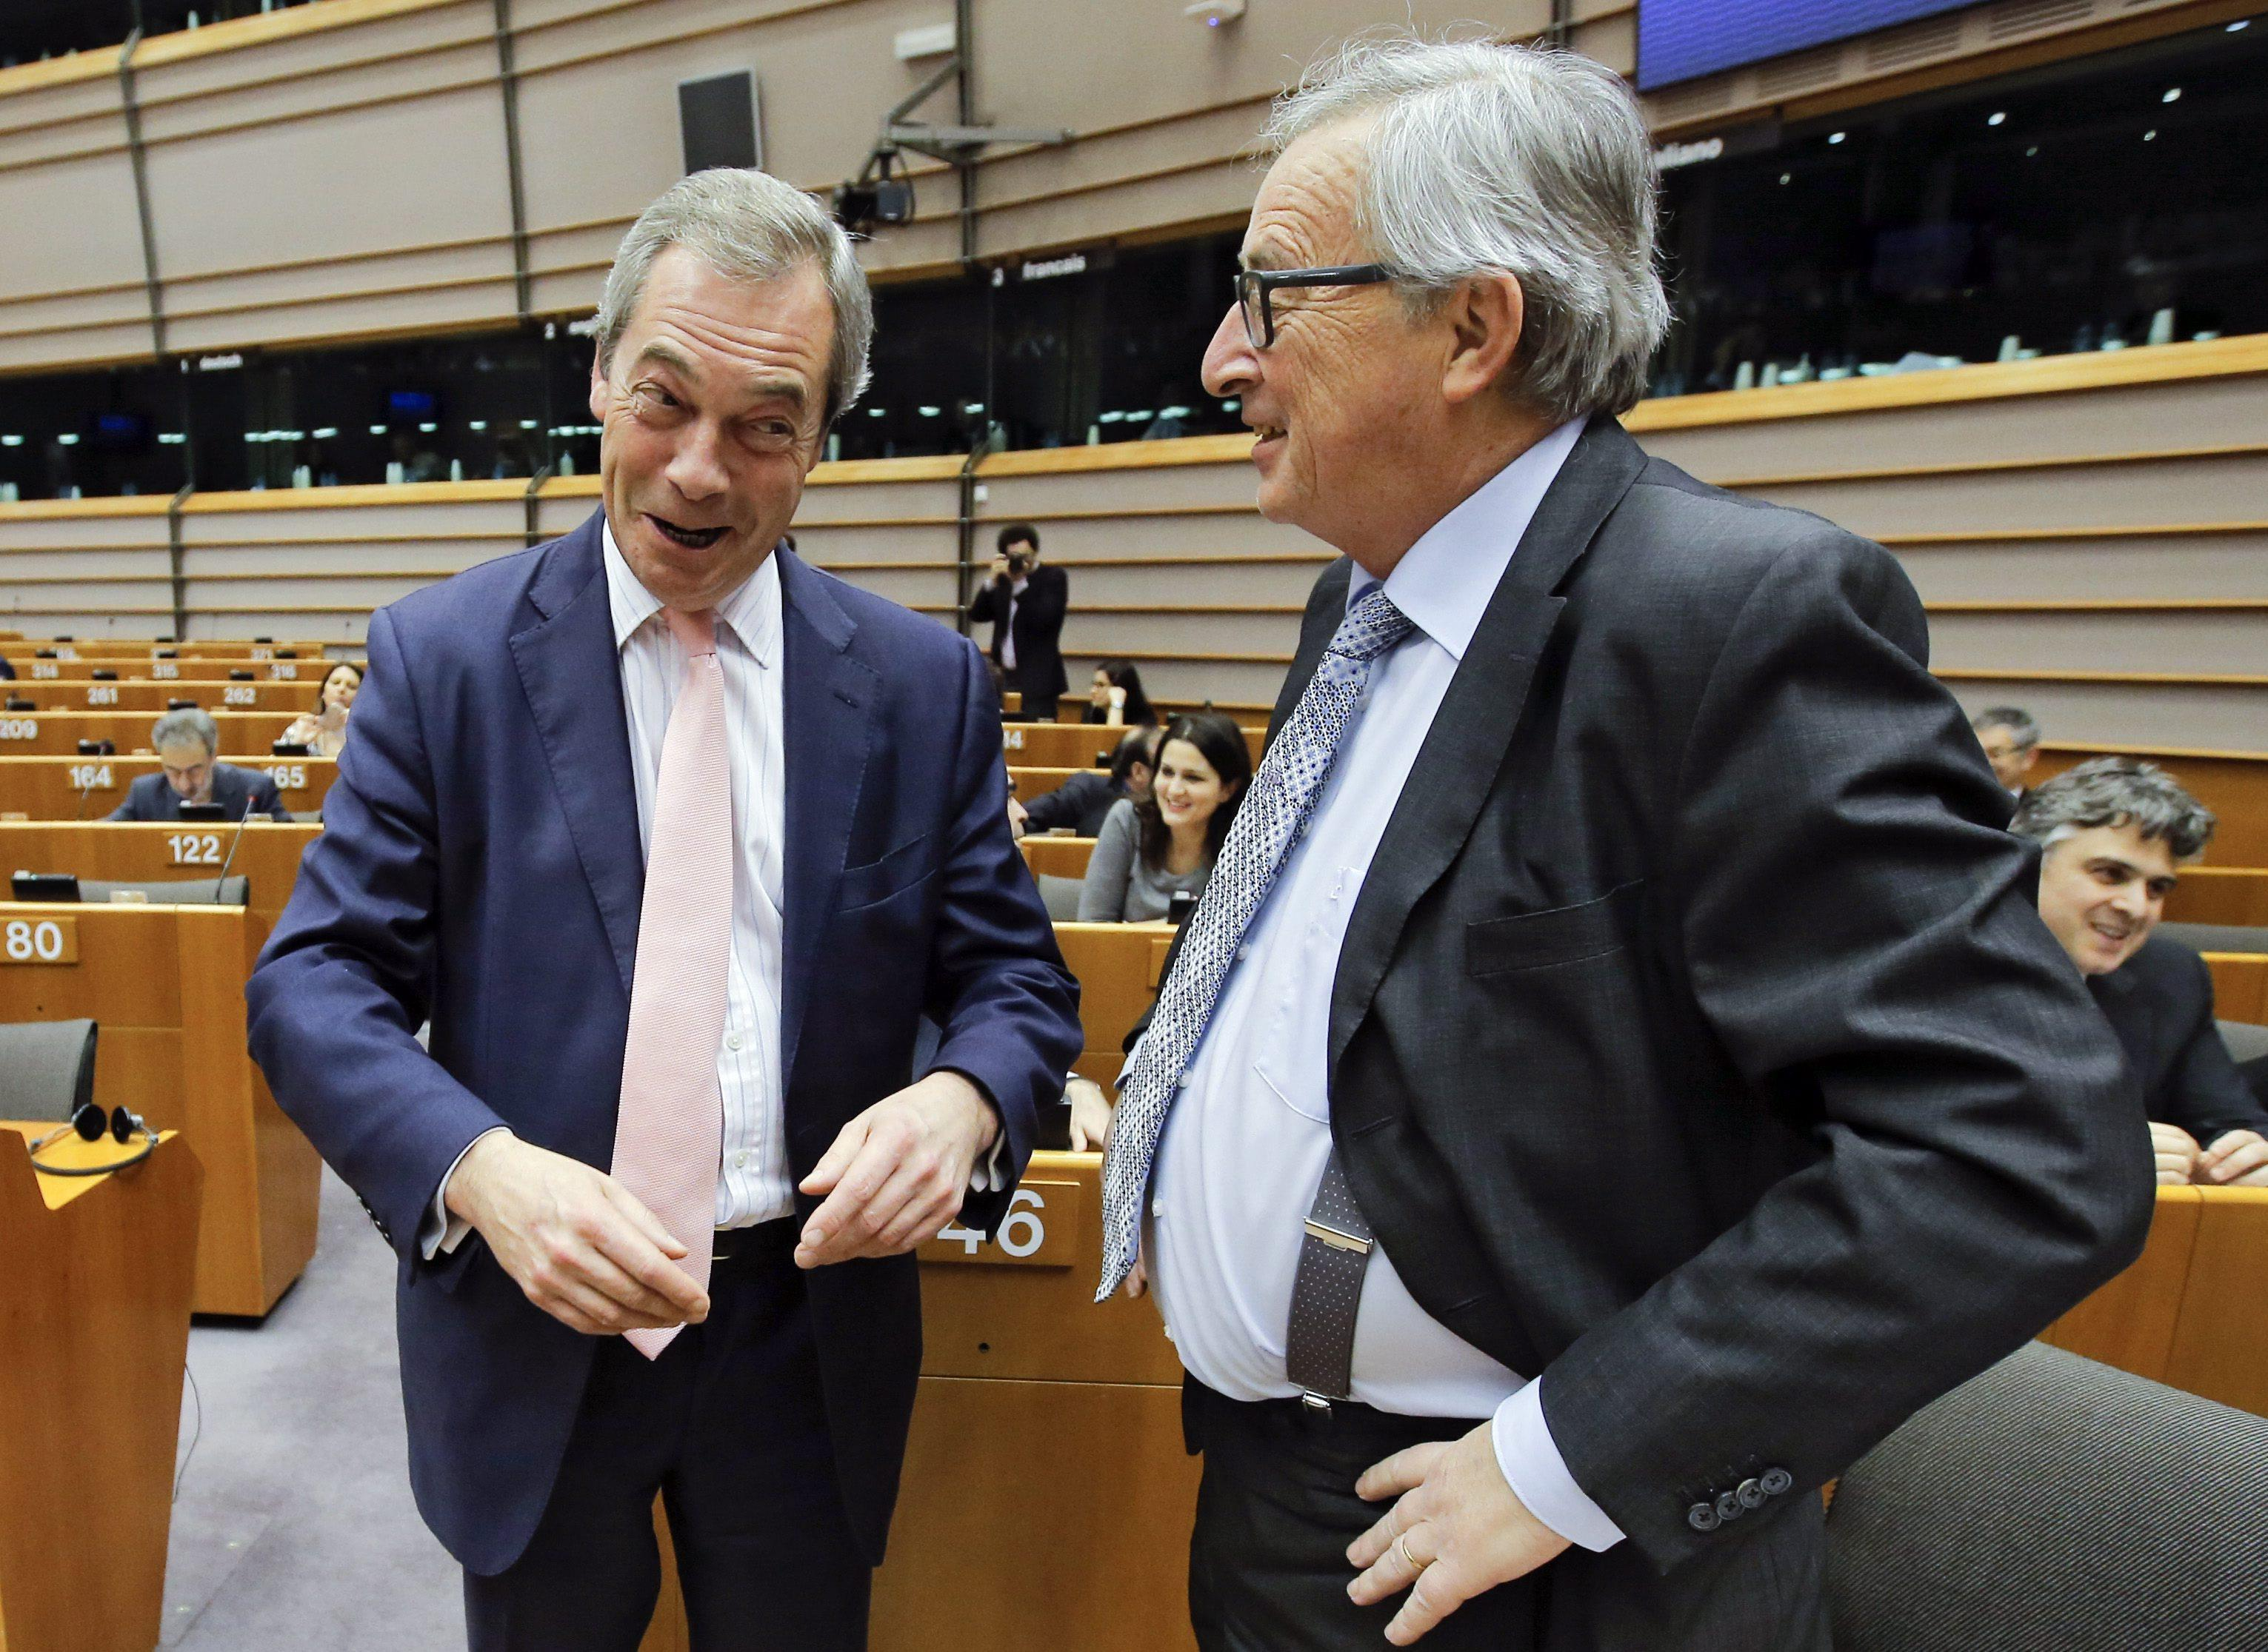 epa05178542 Nigel Farage (L), leader of the United Kingdom Independence Party (UKIP) and Member of the European Parliament, and European Commission President Jean-Claude Juncker (R) chat at the start of a European Parliament plenary session held in Brussels, Belgium, 24 February 2016. According to the Parliament's agenda, members of parliament are to discuss the results of of the European Council meeting held on 18 and 19 February which was topped by negotiations over a deal with Britain. EPA/OLIVIER HOSLET